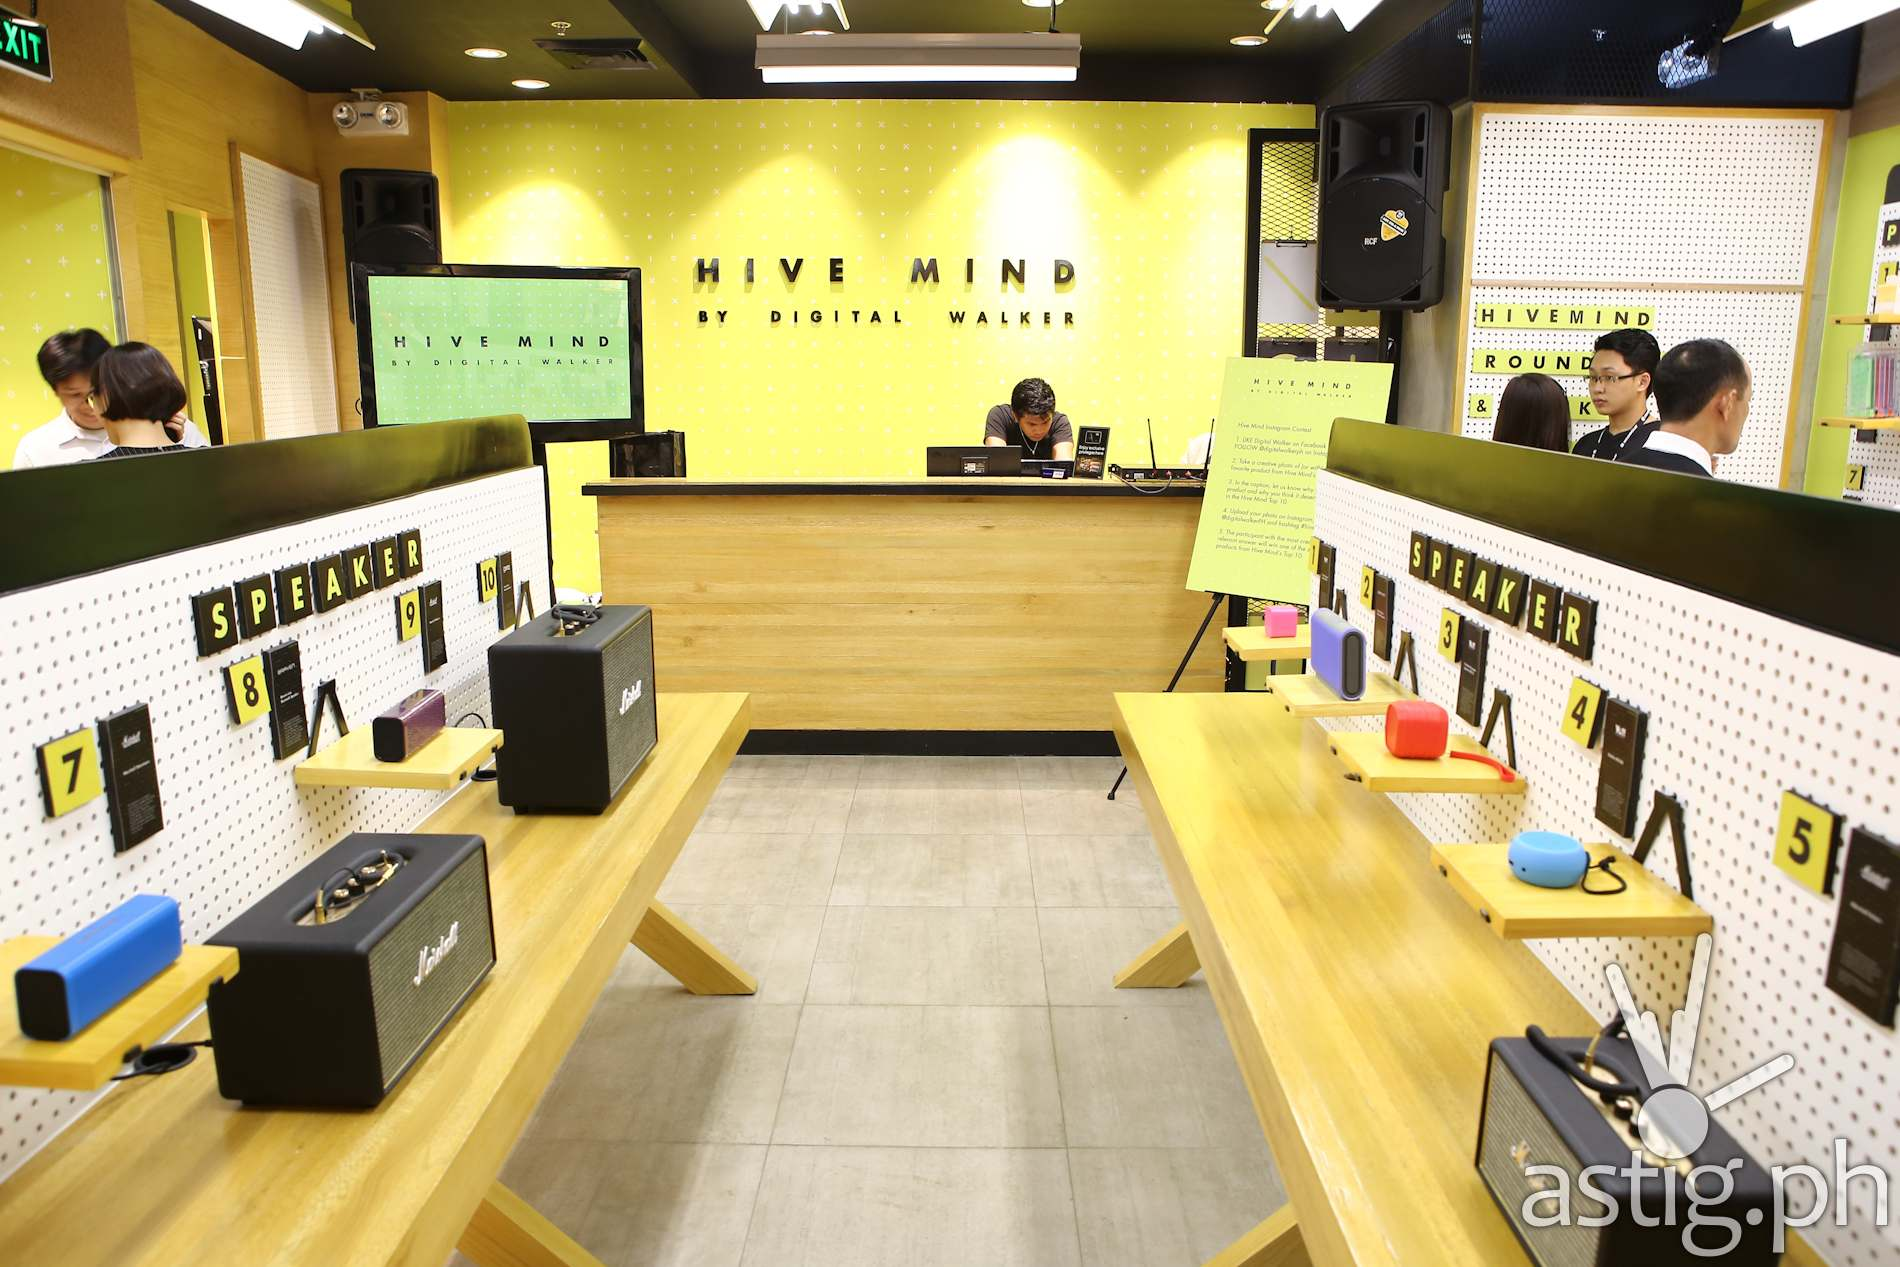 Hive Mind by Digital Walker is now open in TriNoMa